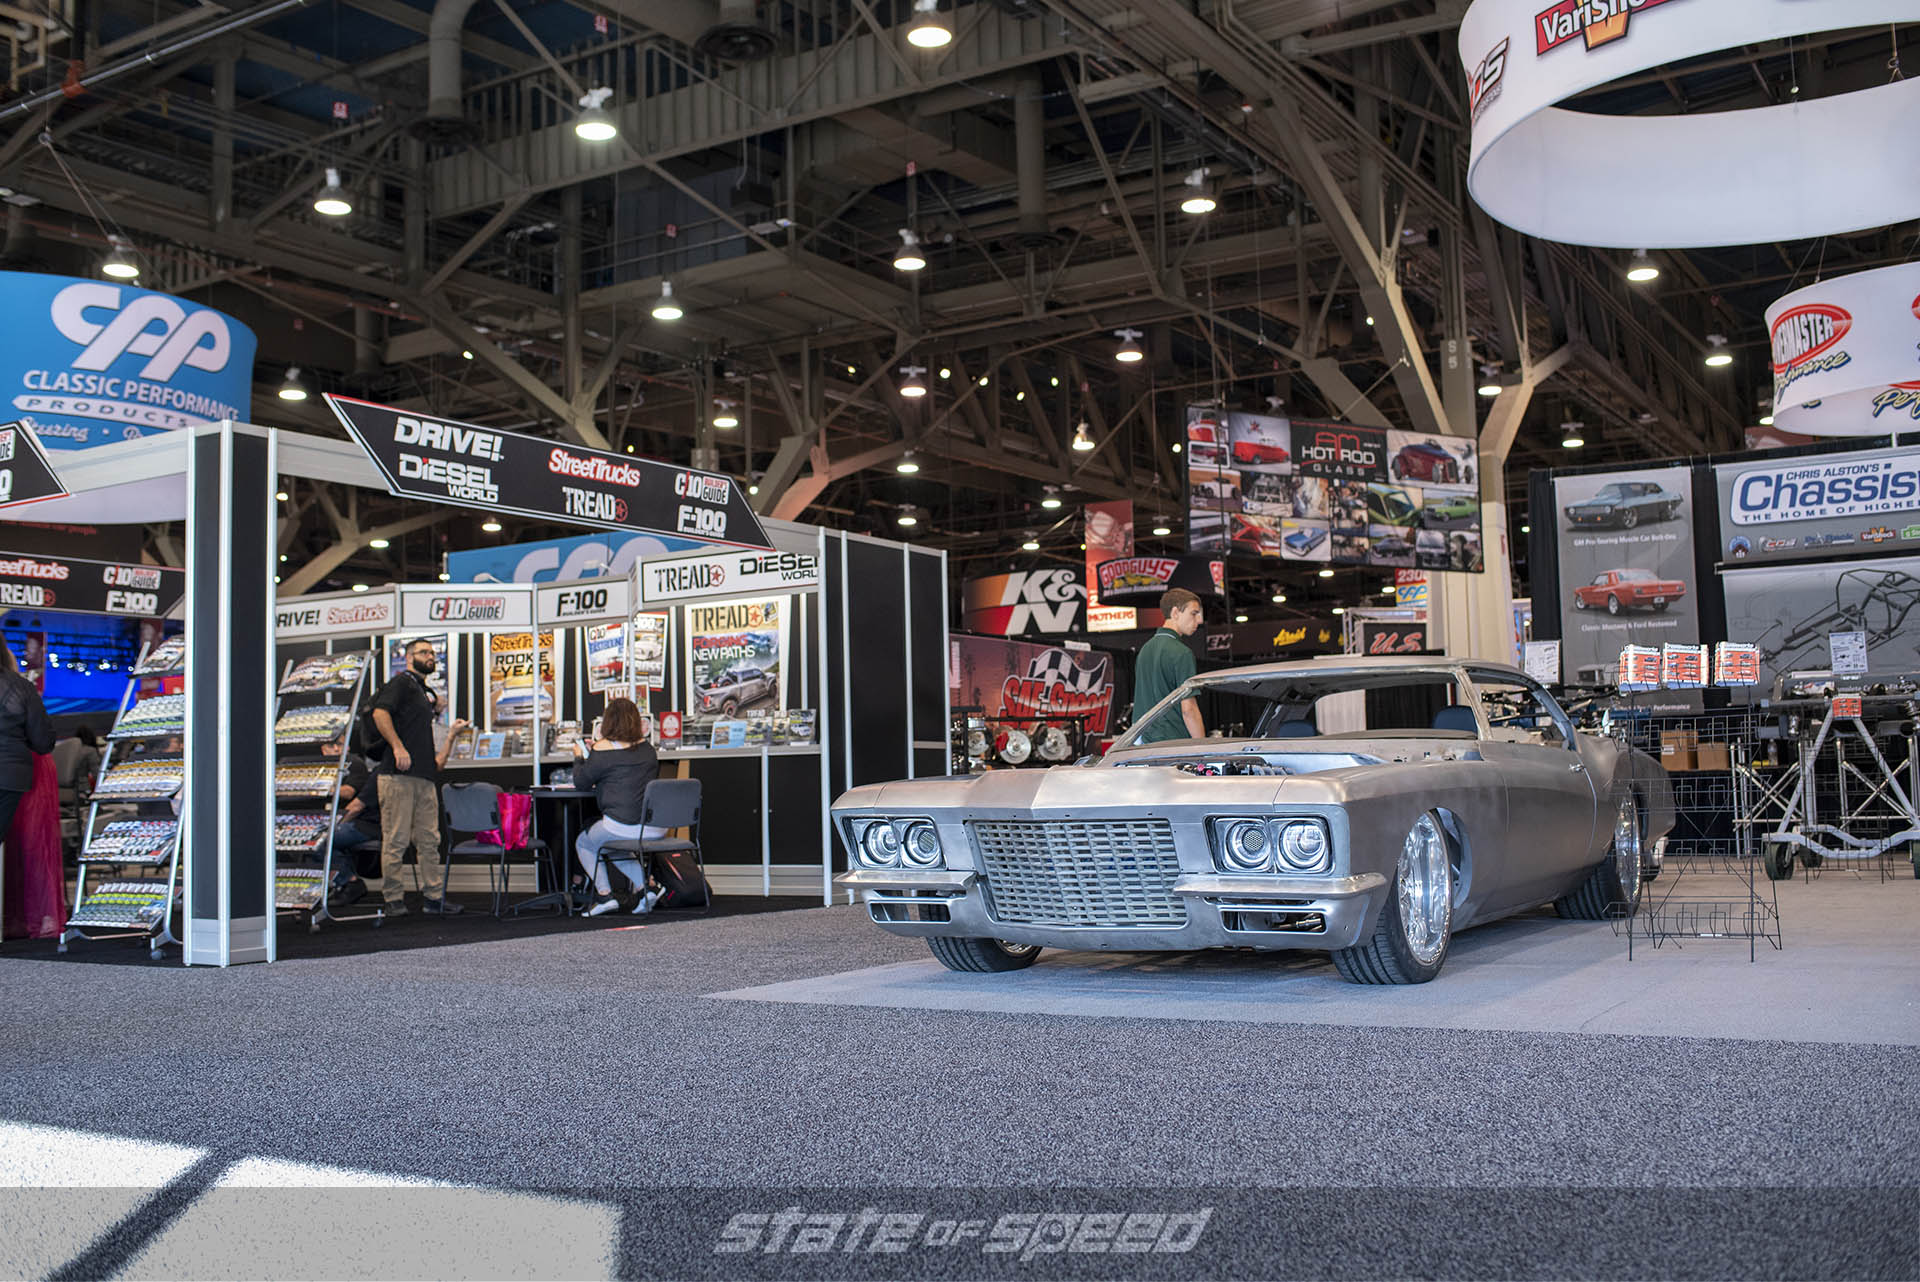 72' Riviera with Katech LT4 built by Fast n' Loud's Gas Monkey Garage in the Chassisworks booth at SEMA 2019